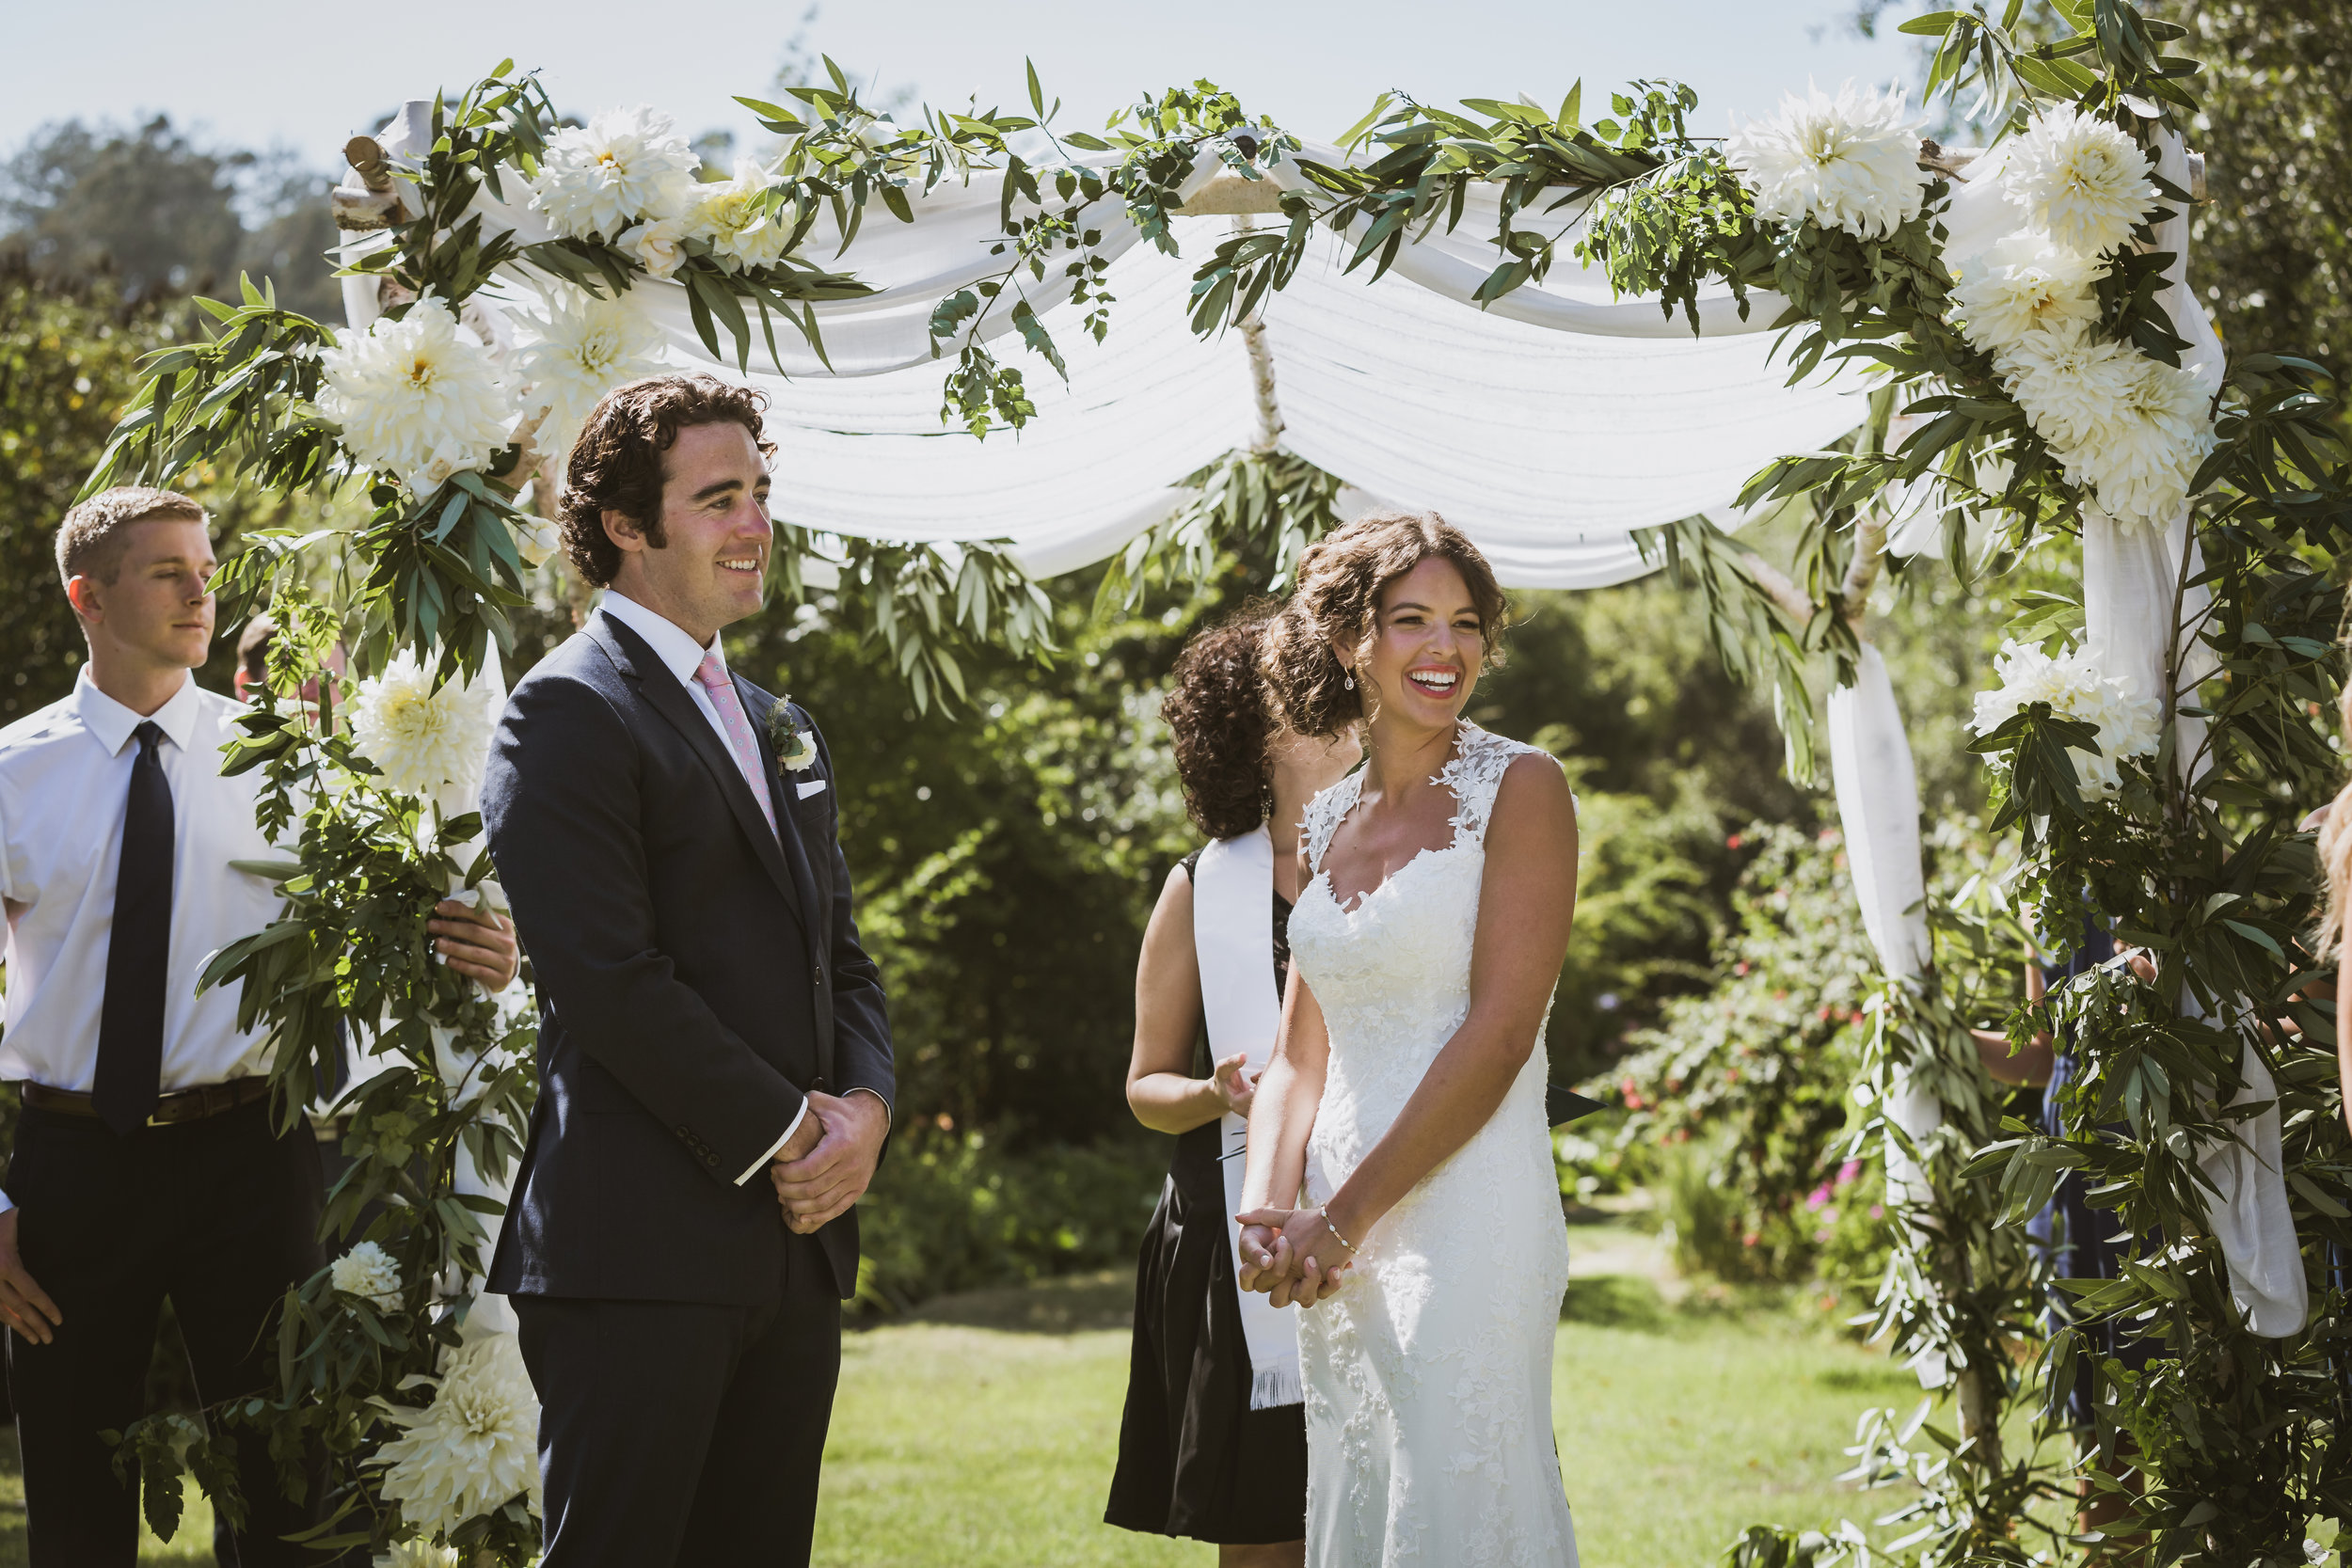 Jewish Catholic interfaith wedding ceremony.jpg